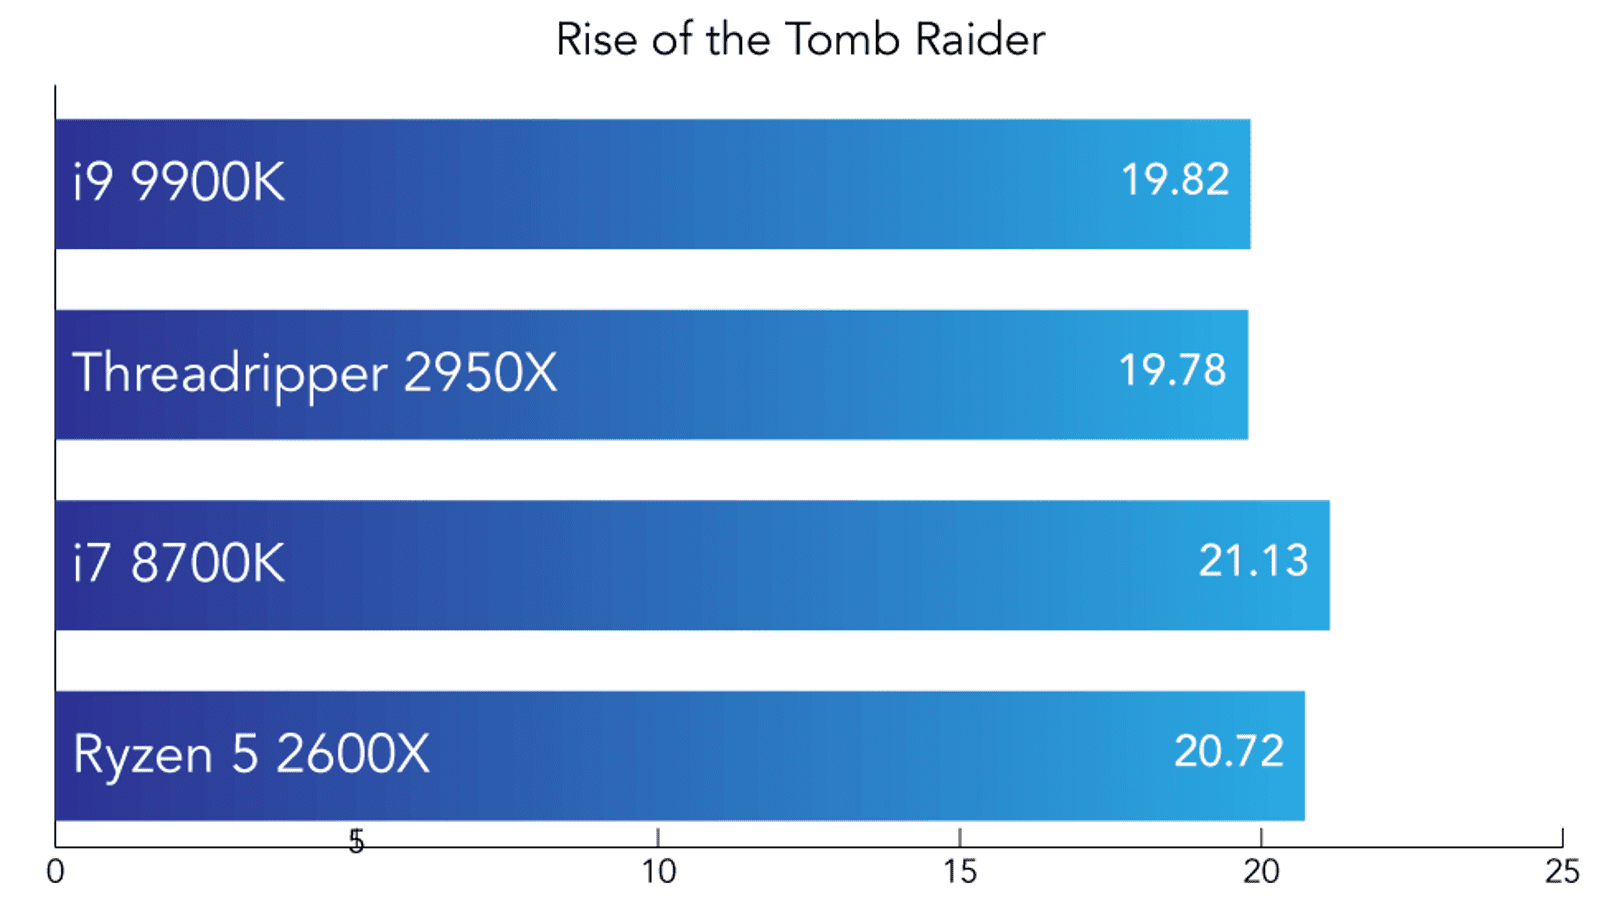 Average frames per second in Rise of the Tomb Raider. Higher is better.